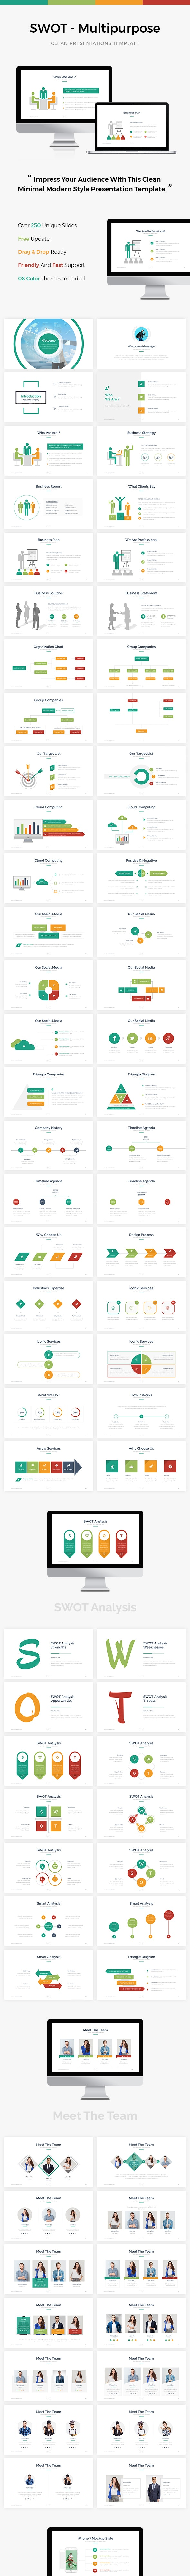 SWOT - Multipurpose PowerPoint Template - Business PowerPoint Templates